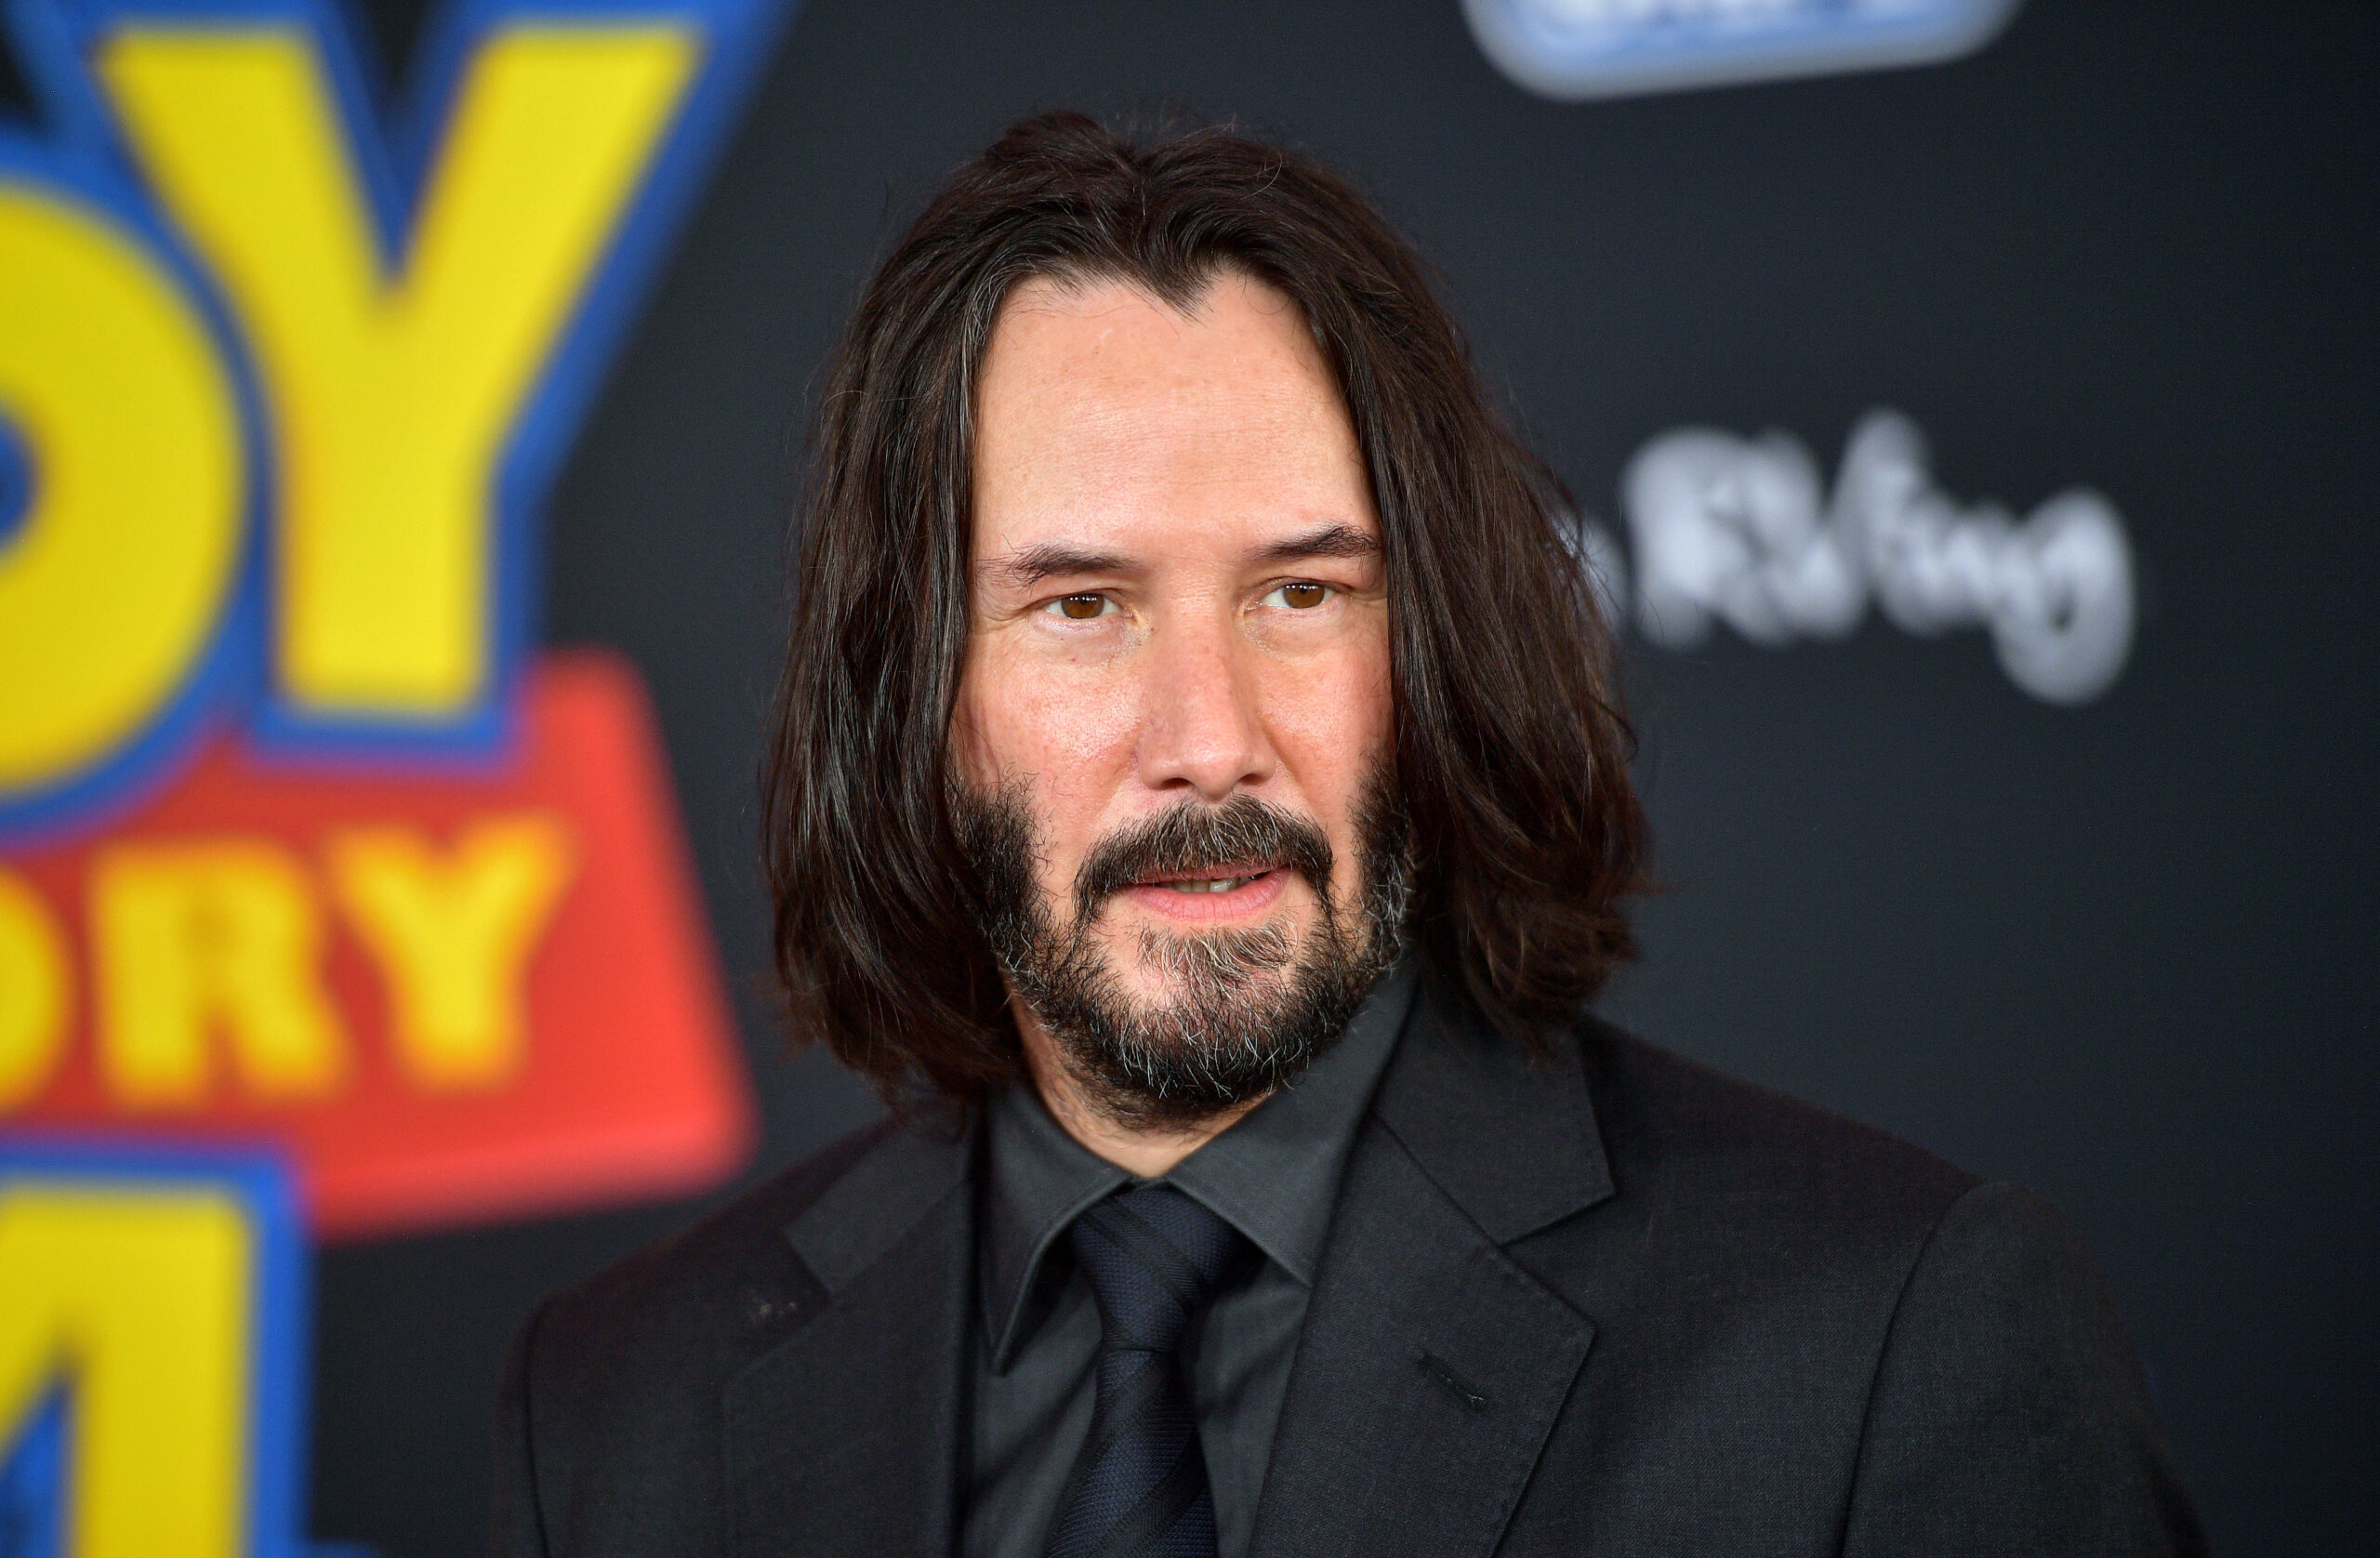 "LOS ANGELES, CALIFORNIA - JUNE 11: Keanu Reeves attends the premiere of Disney and Pixar's ""Toy Story 4"" on June 11, 2019 in Los Angeles, California. (Photo by Matt Winkelmeyer/Getty Images)"